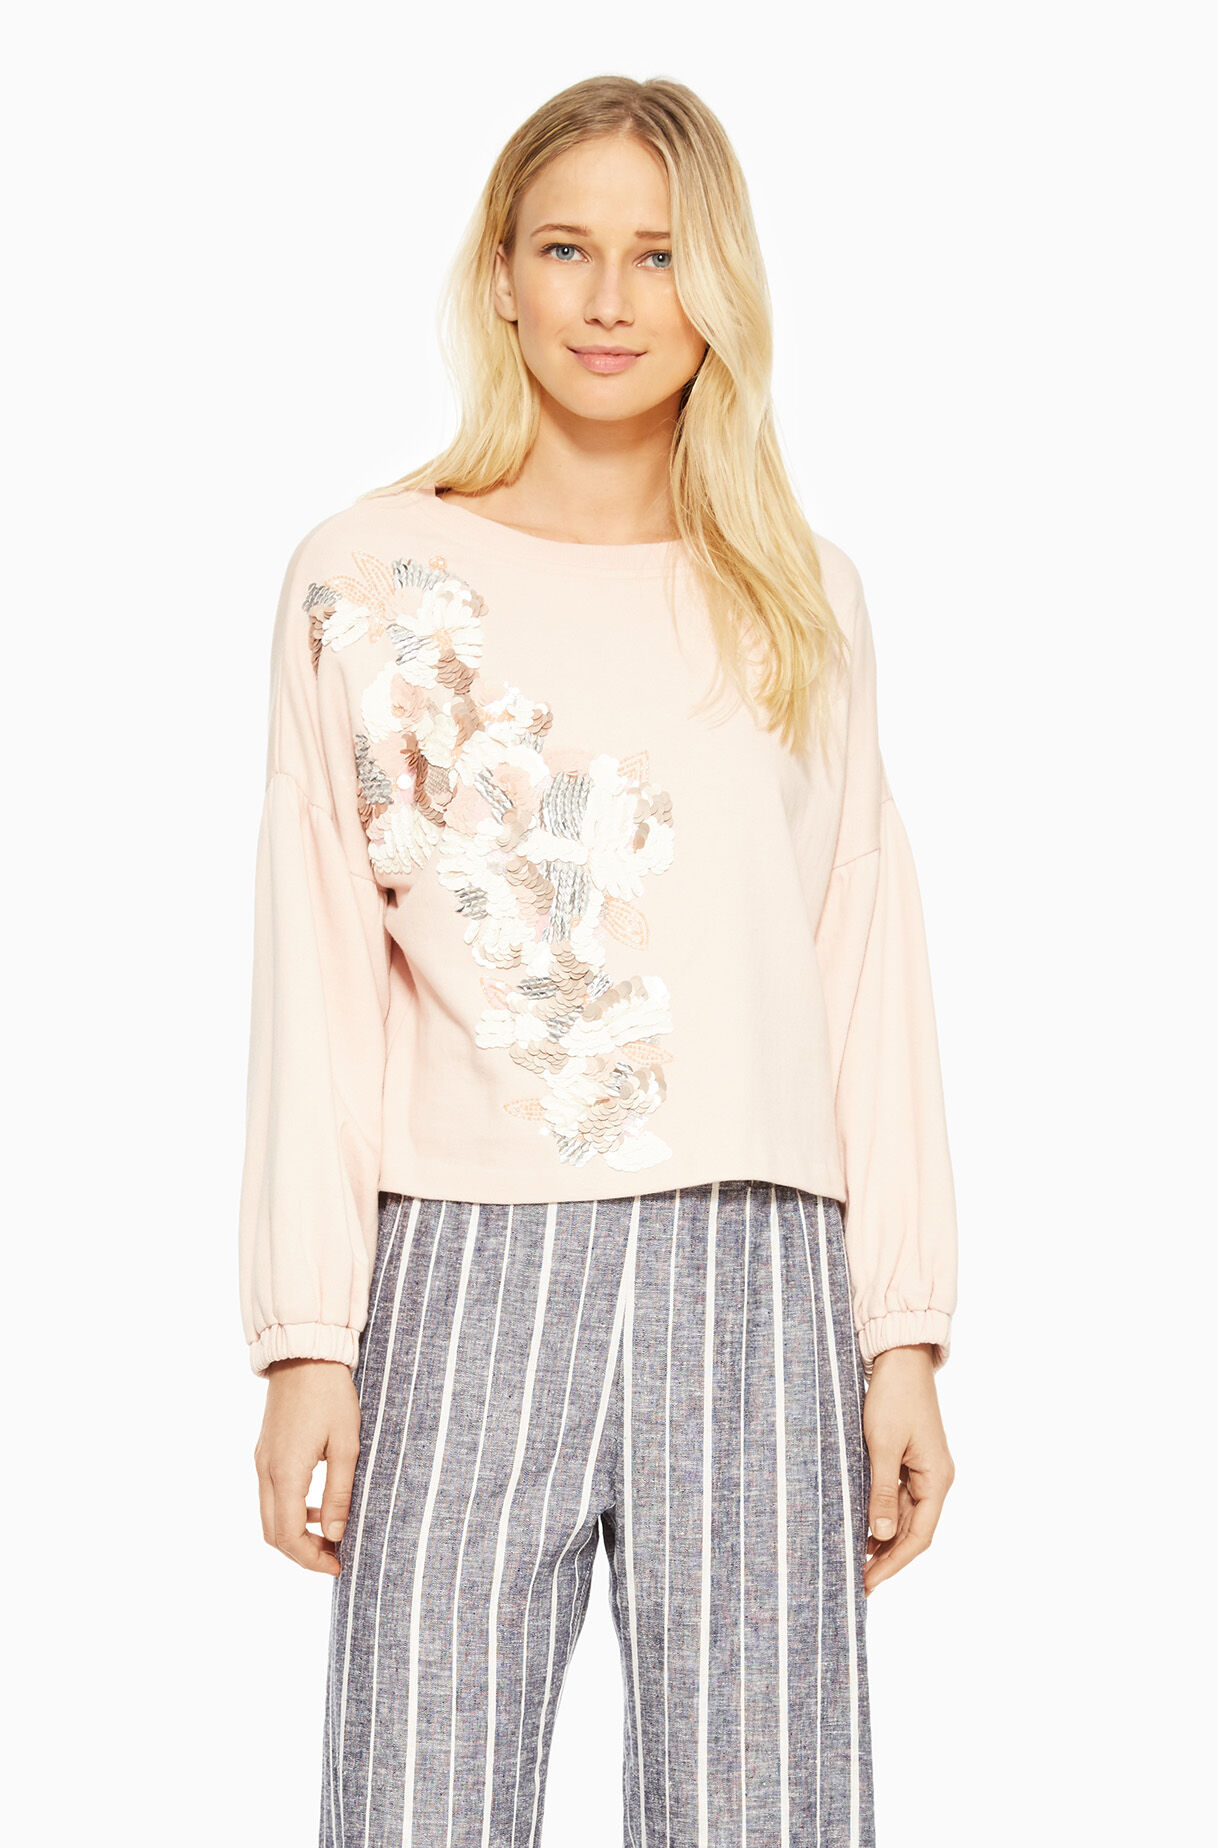 Berniece Top - Pearl Blush